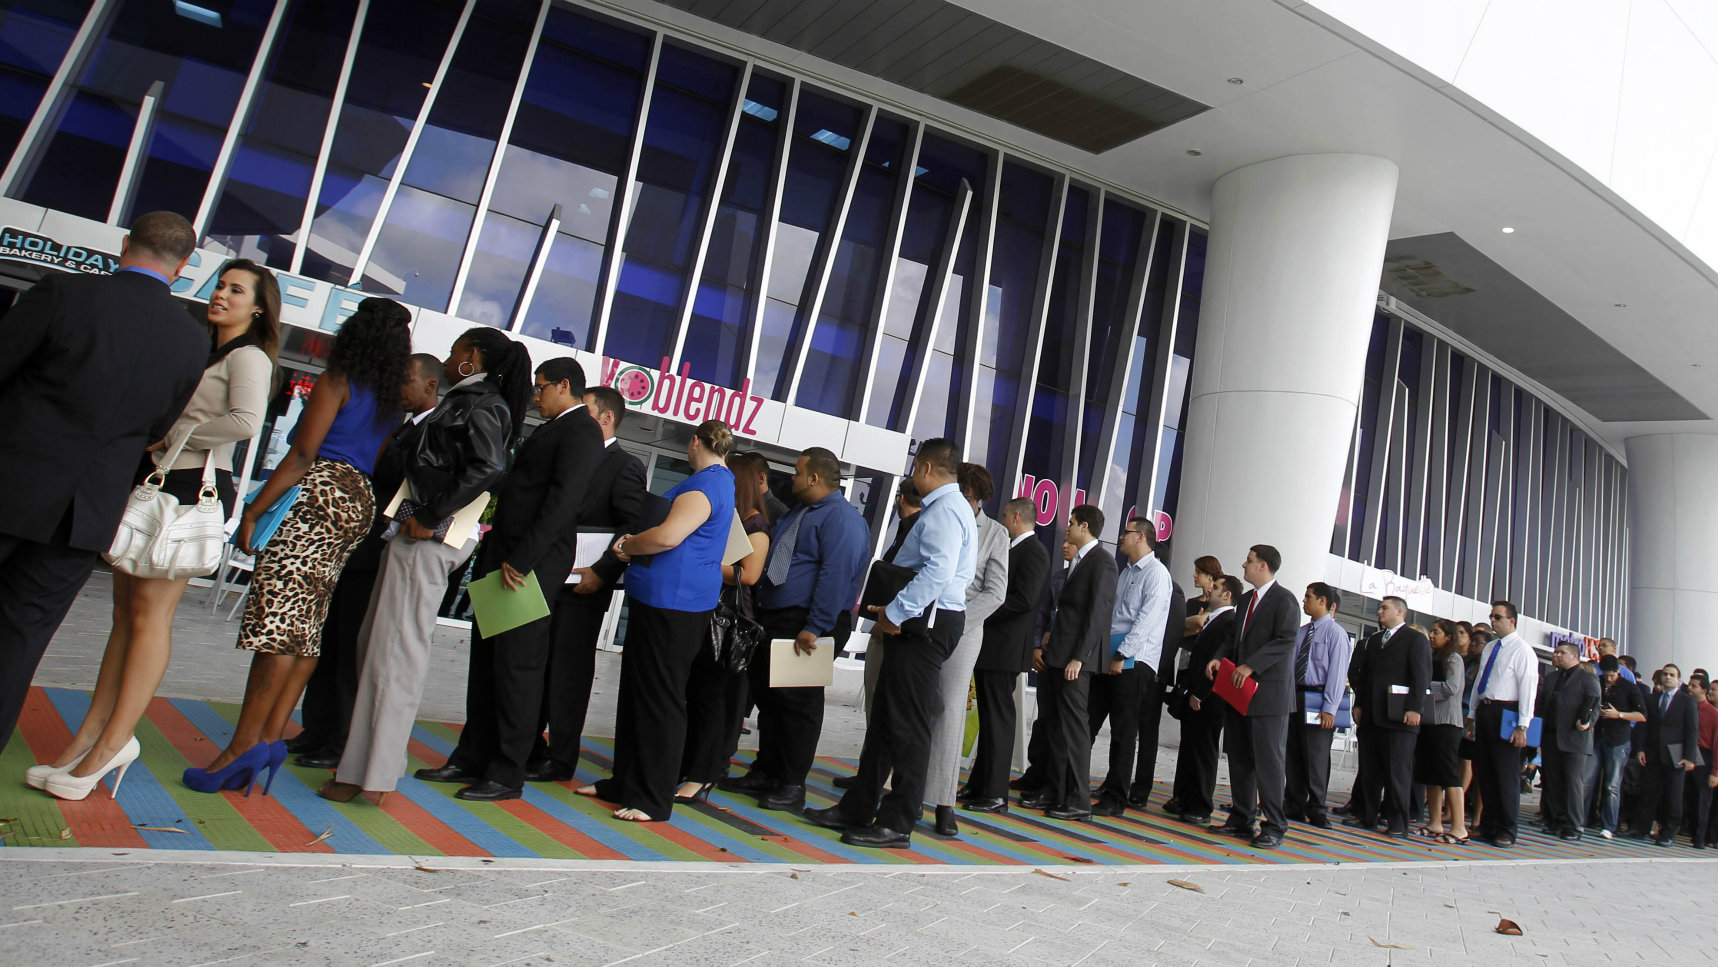 Job applicants stand in line at outside Marlins Park in Miami, Wednesday, Oct. 24, 2012 as the Florida Marlins host an Internship Job Fair to fill paid internship positions as the 2013 baseball season approaches.